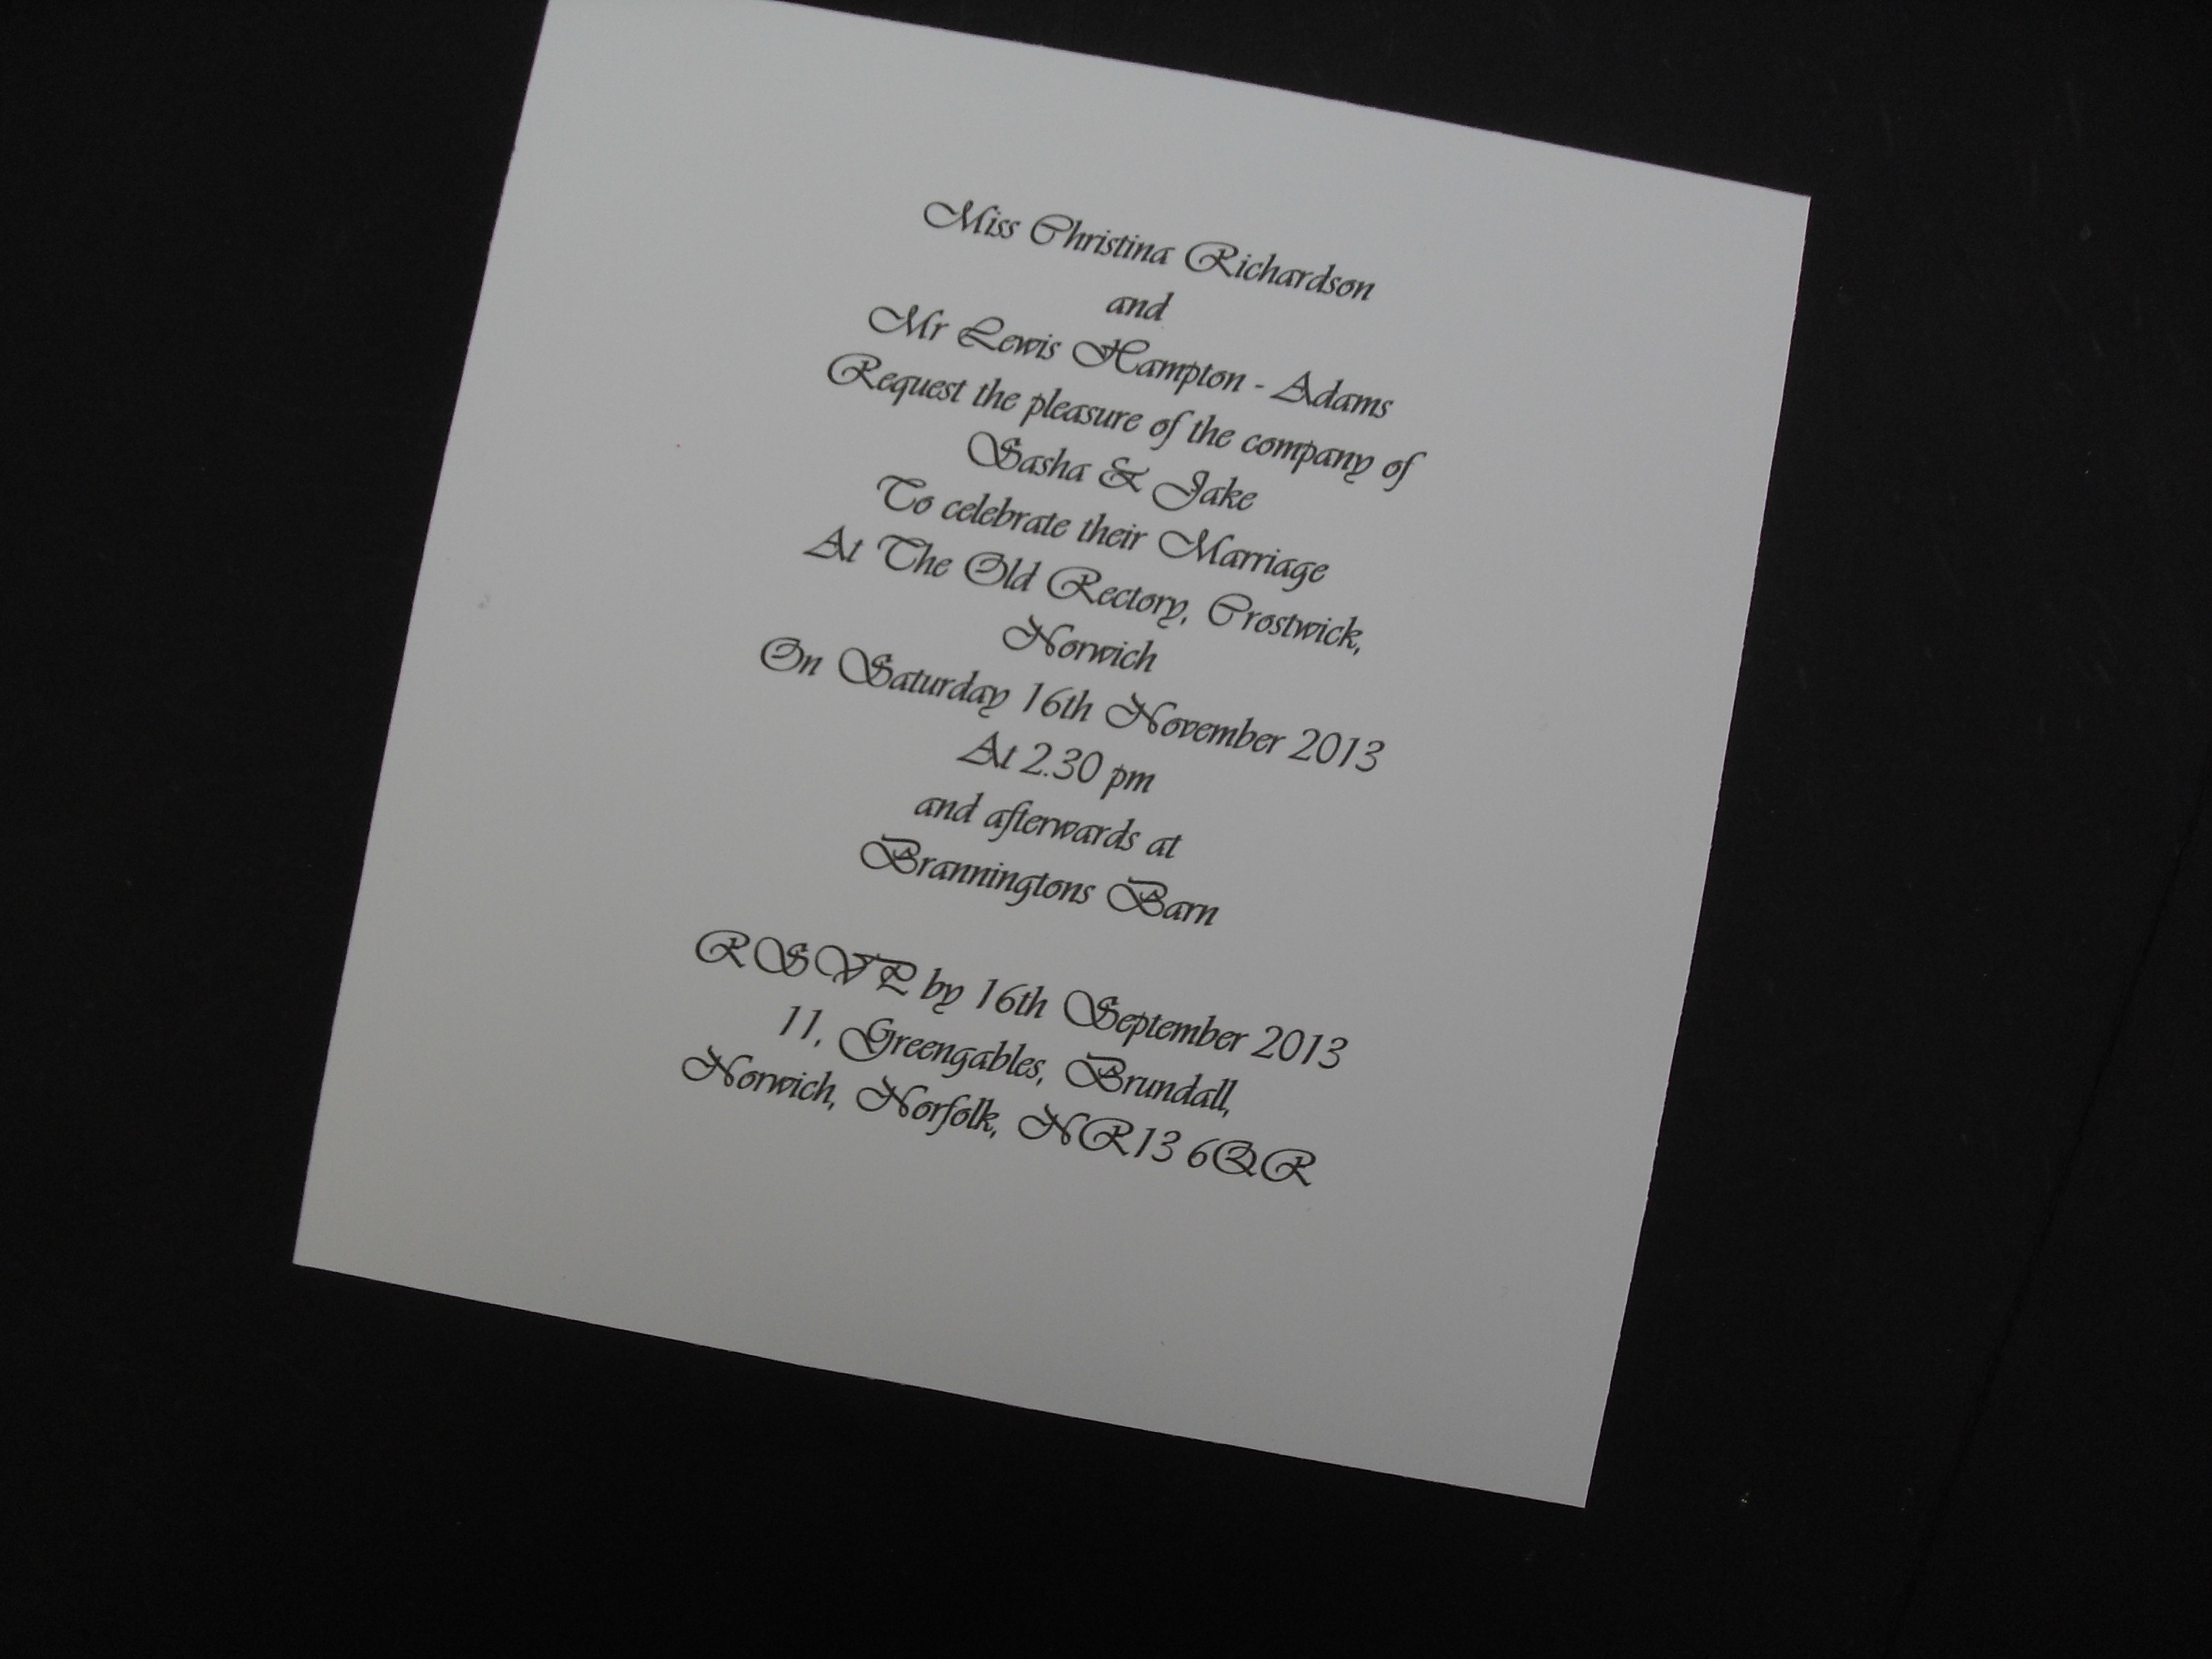 wedding invitation details (2).jpg: 4837 bytes